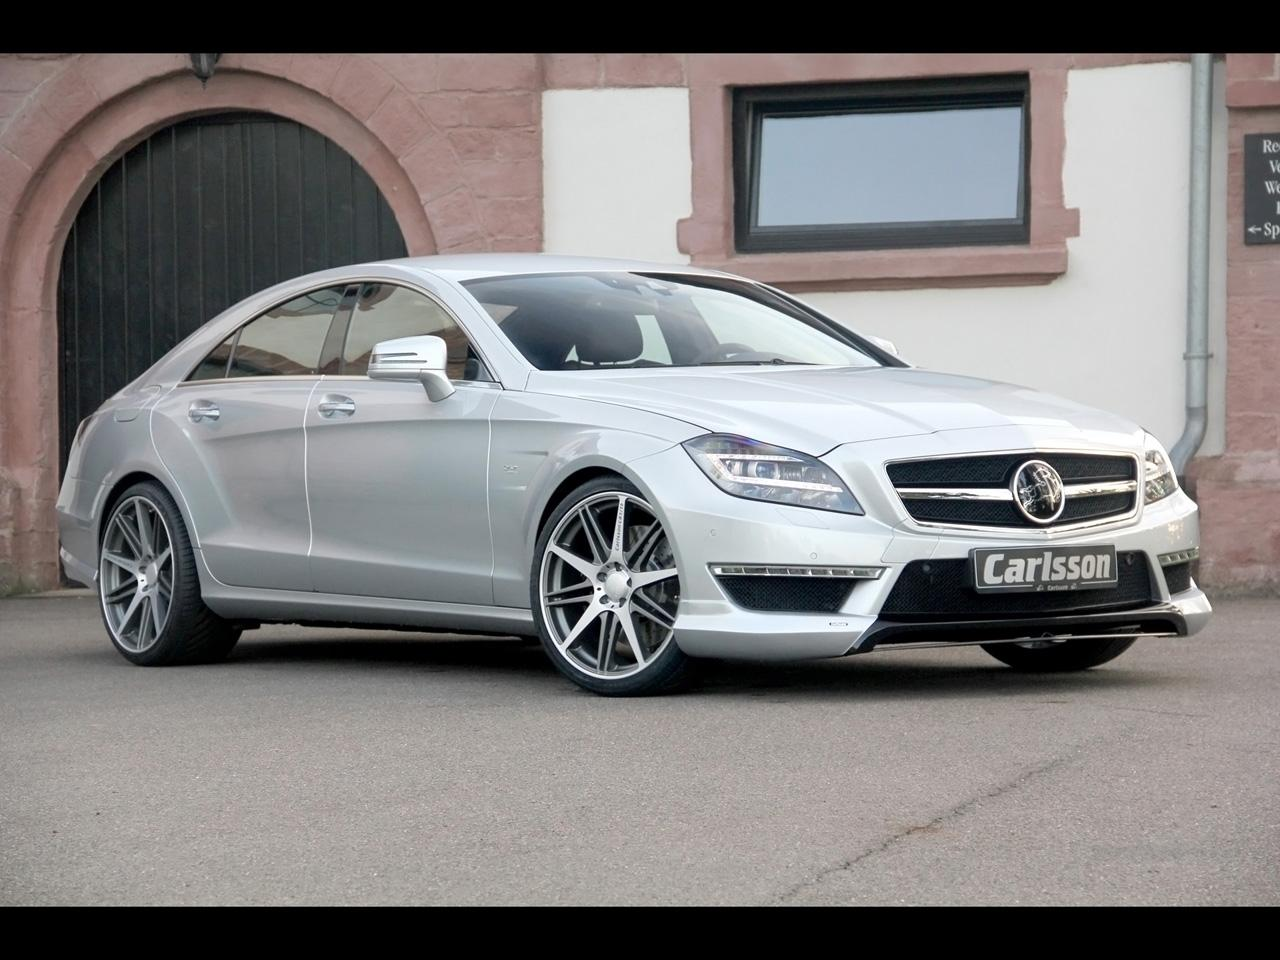 2011 carlsson ck63 rs mercedes benz cls 63 amg wallpapers for Mercedes benz cls 2011